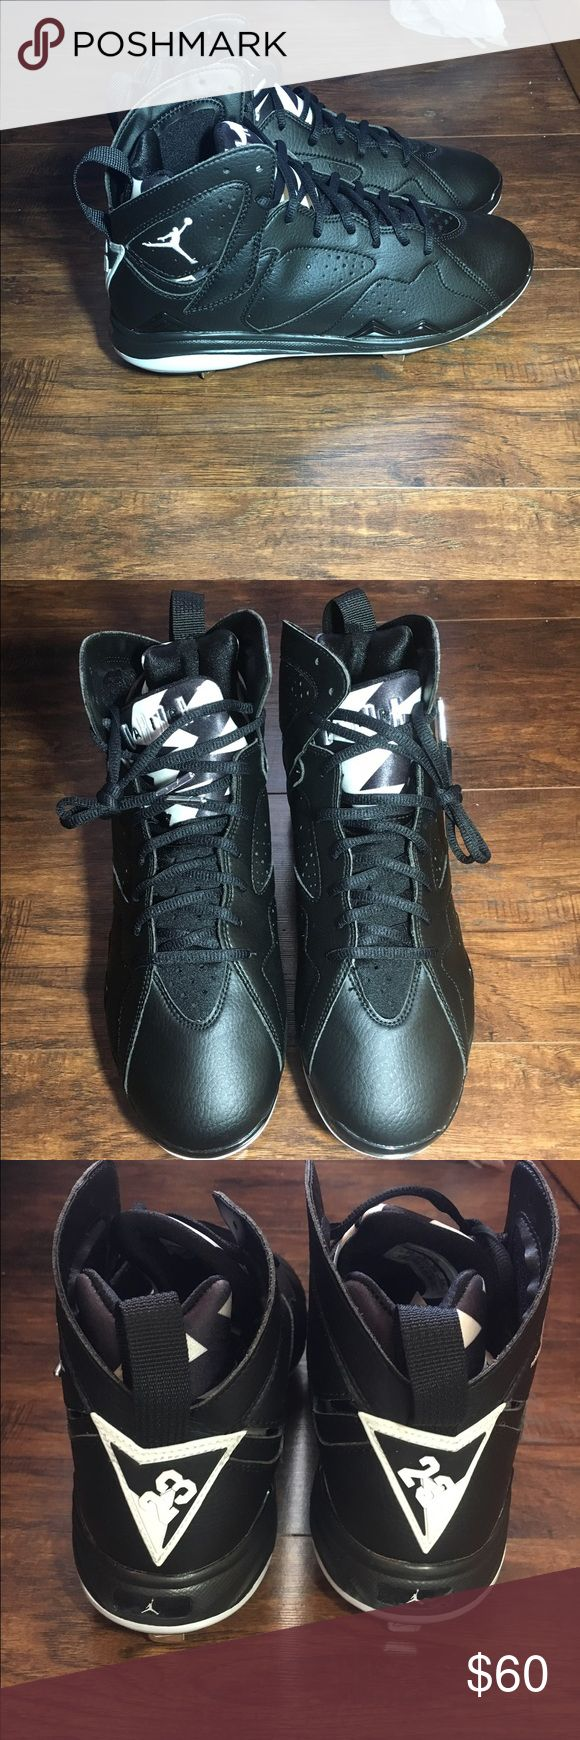 Jordan baseball cleats Jordan 7's baseball cleats  Brand new without box 100% authentic  Size 10 in men's Jordan Shoes Athletic Shoes